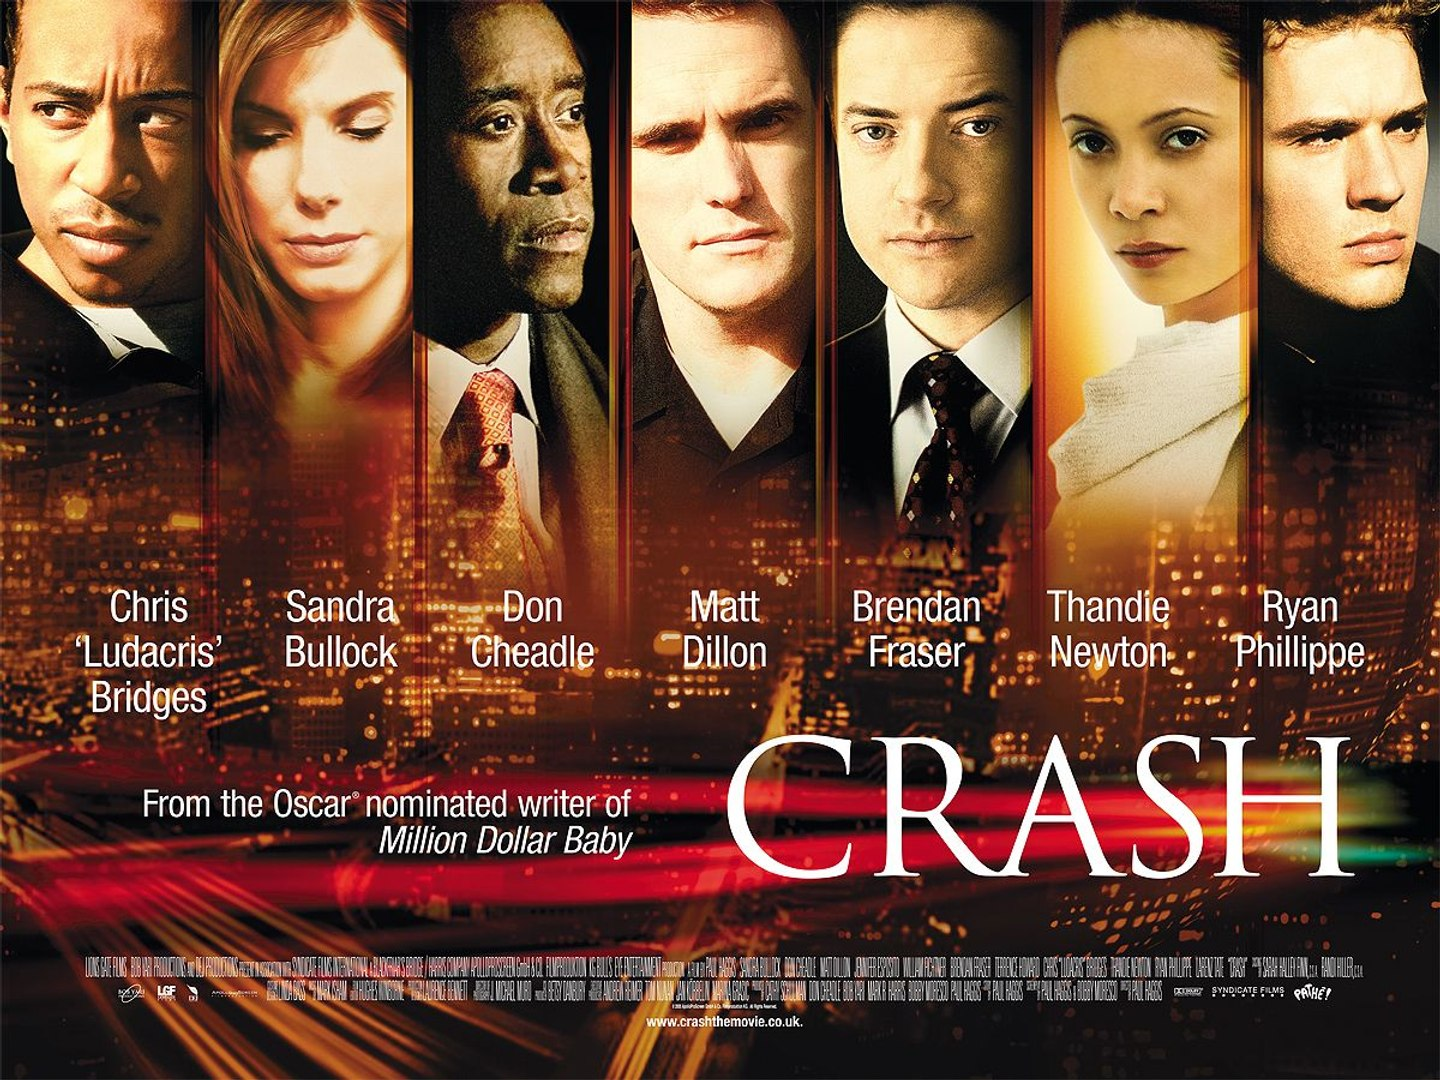 Crash Movie (2004) Sandra Bullock, Don Cheadle, Matt Dillon ...